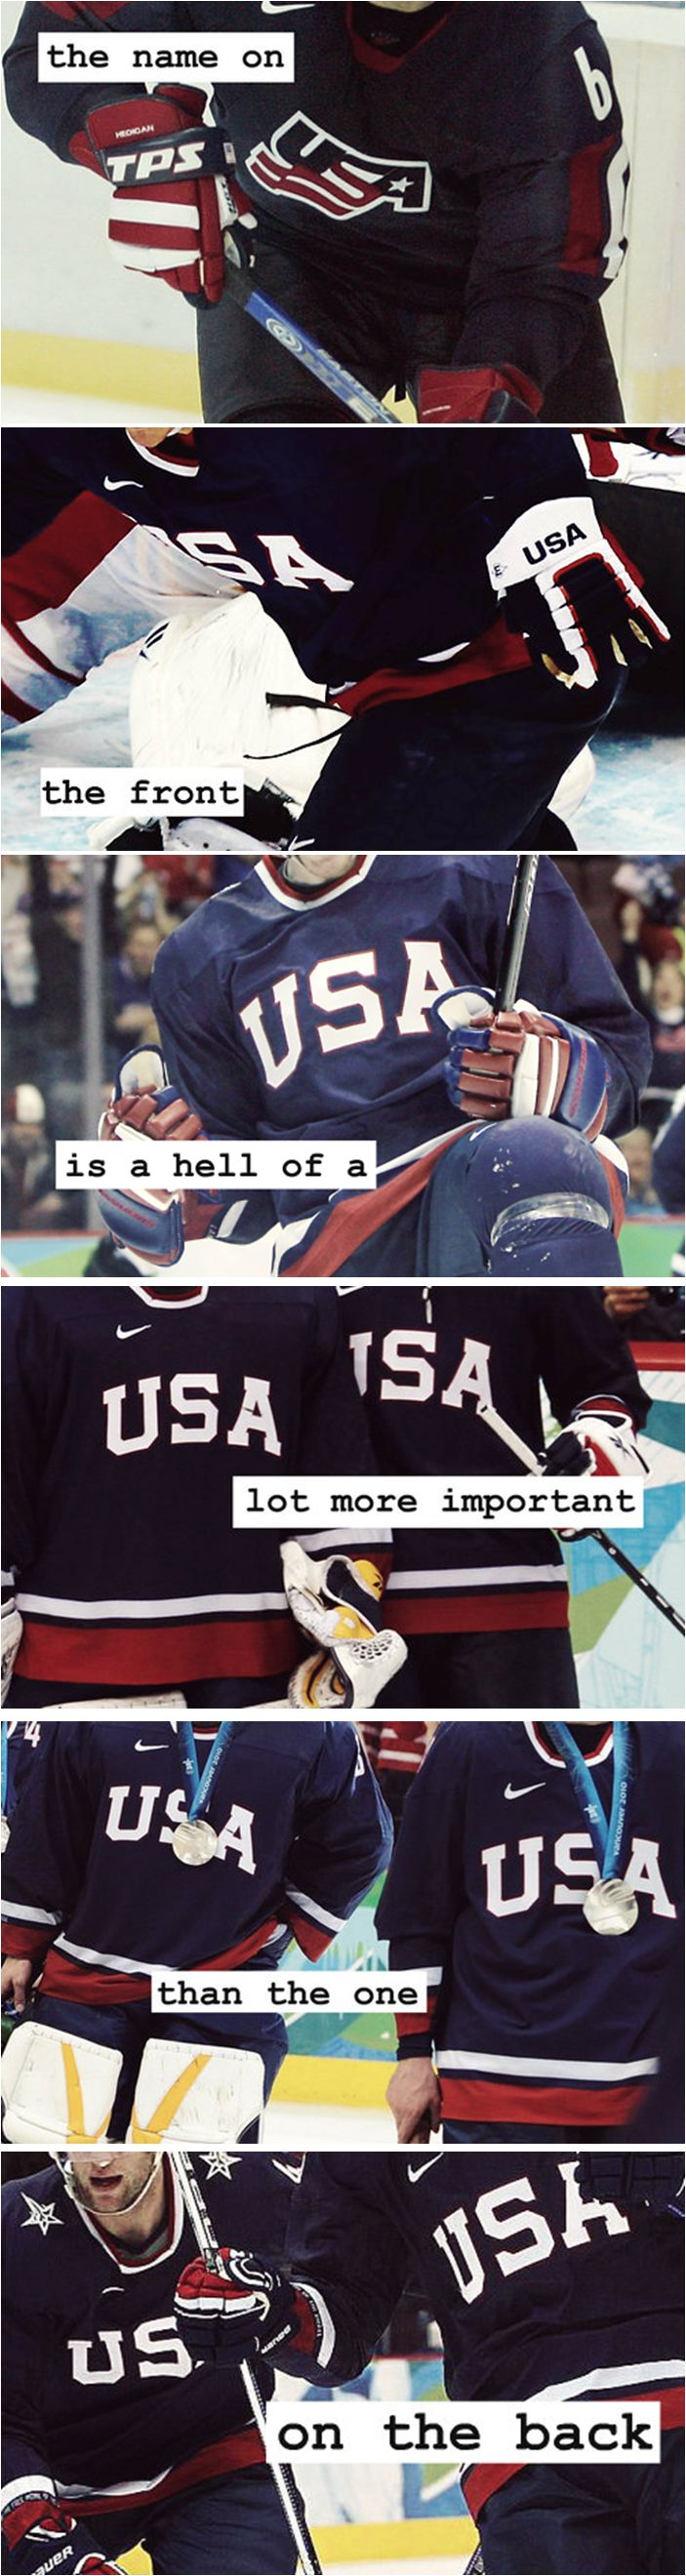 USA Hockey!